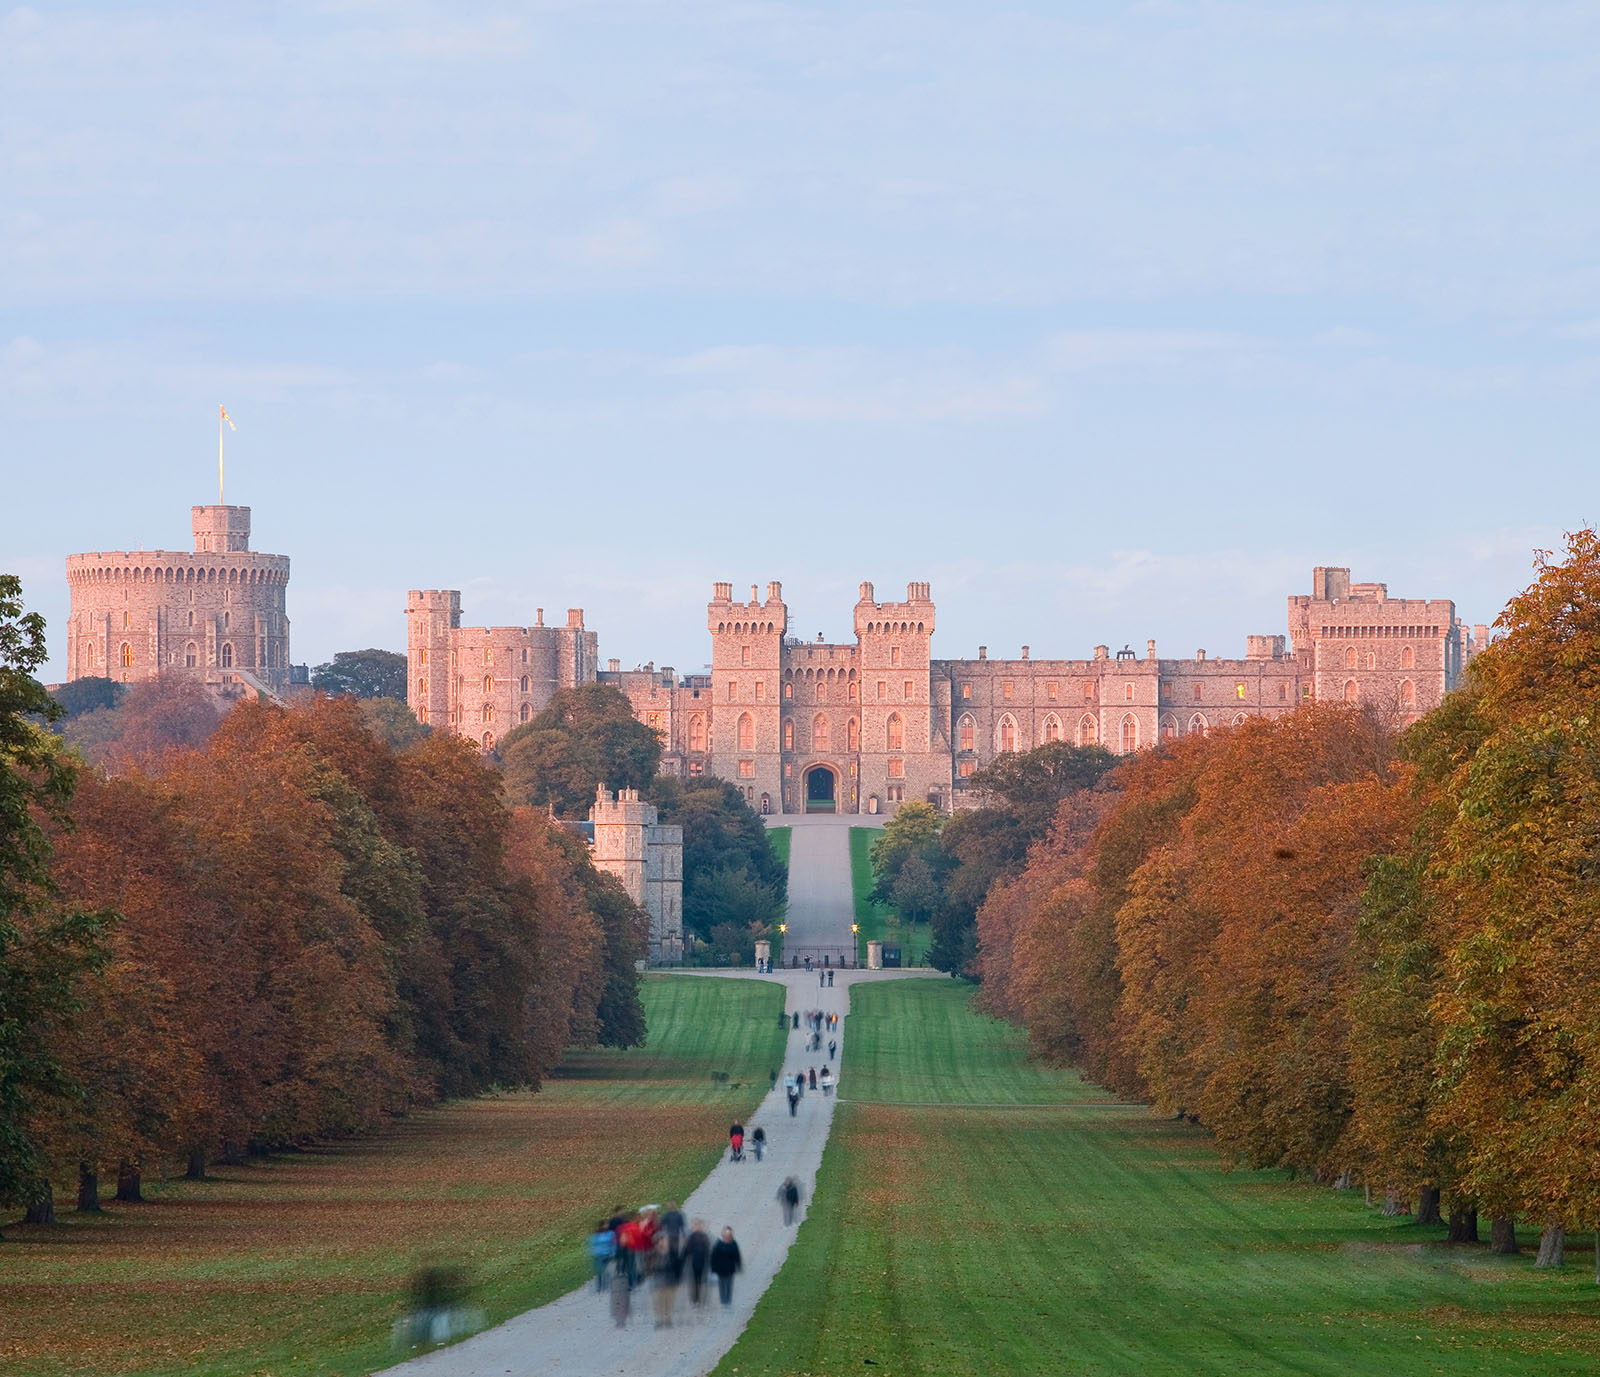 Windsor Castle at Sunset.